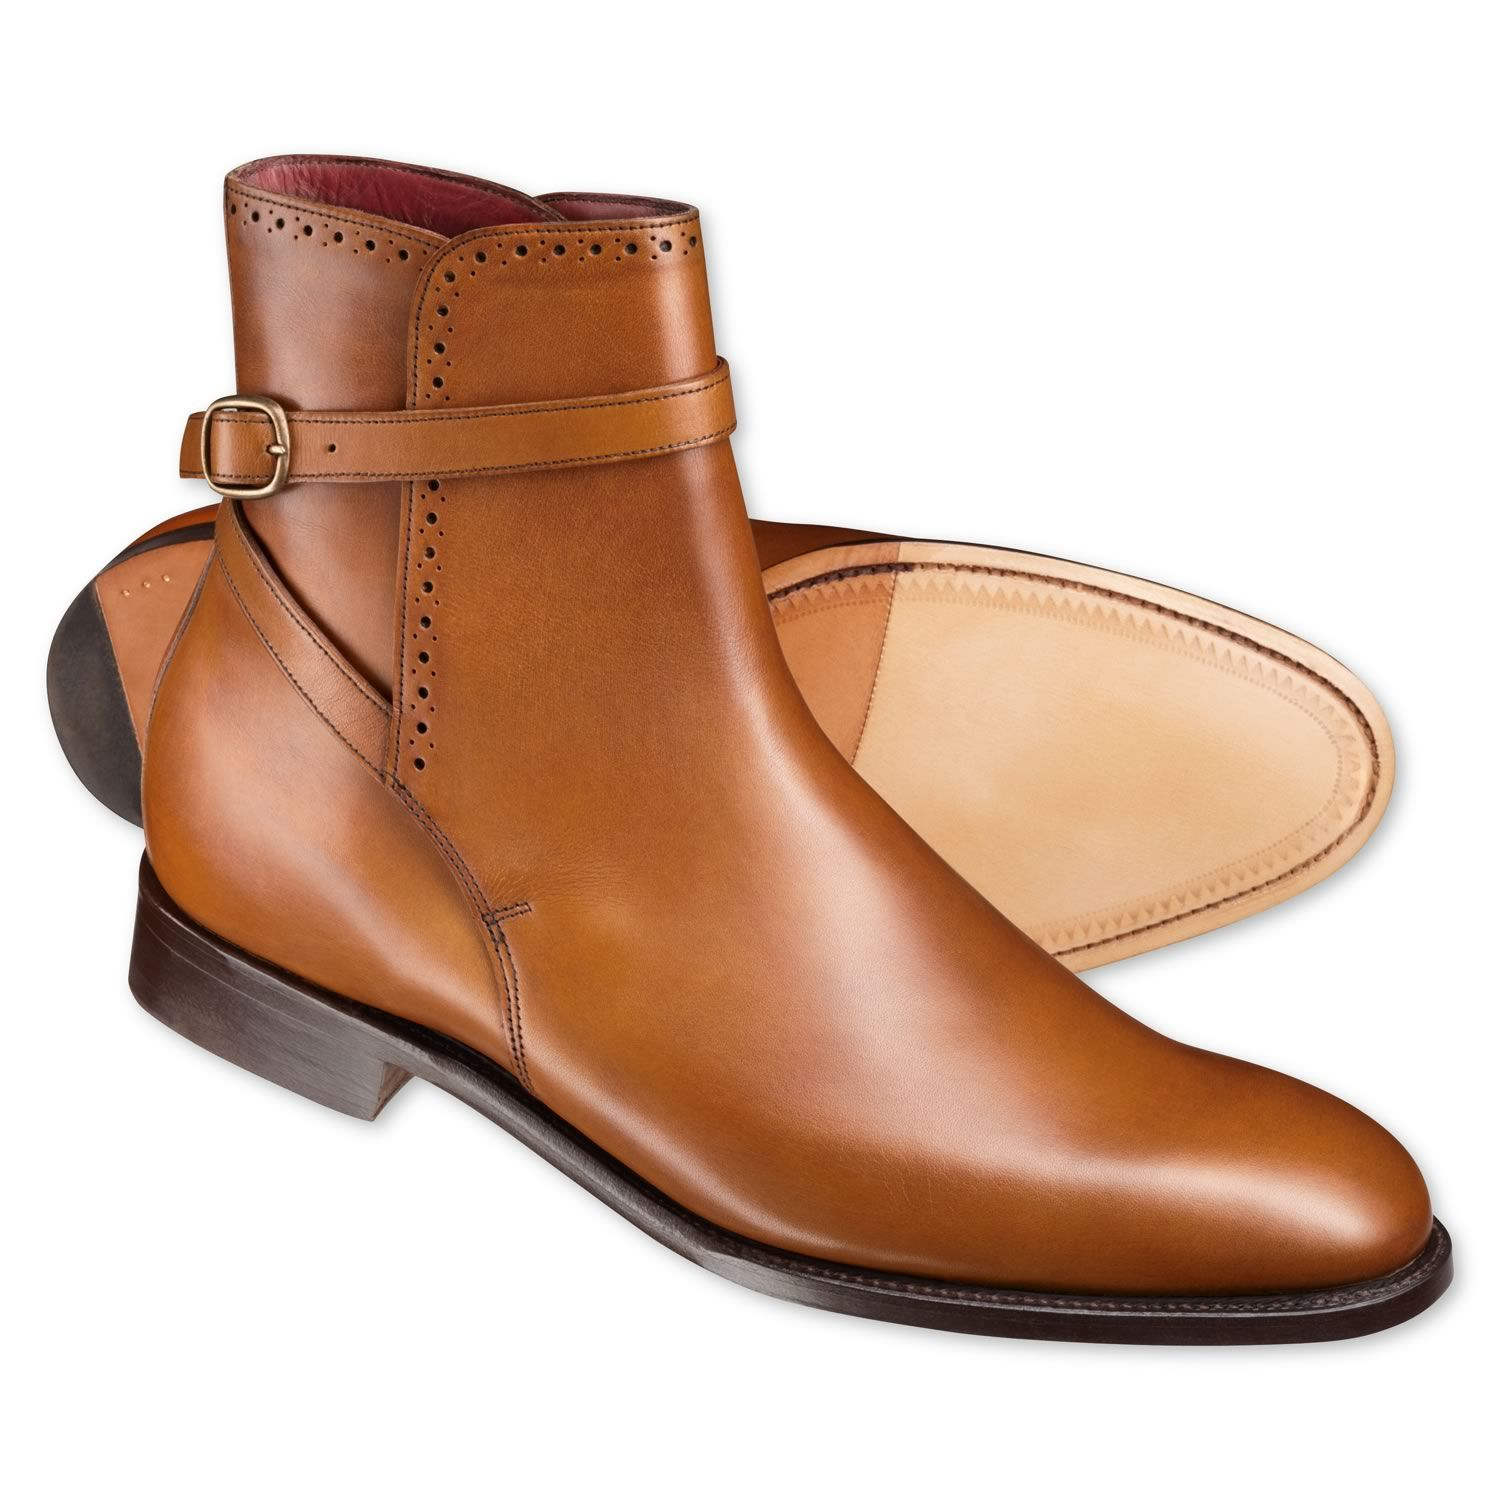 Tan luxury calf jodhpur boots  Mens boots from Charles Tyrwhitt Jermyn  Street London